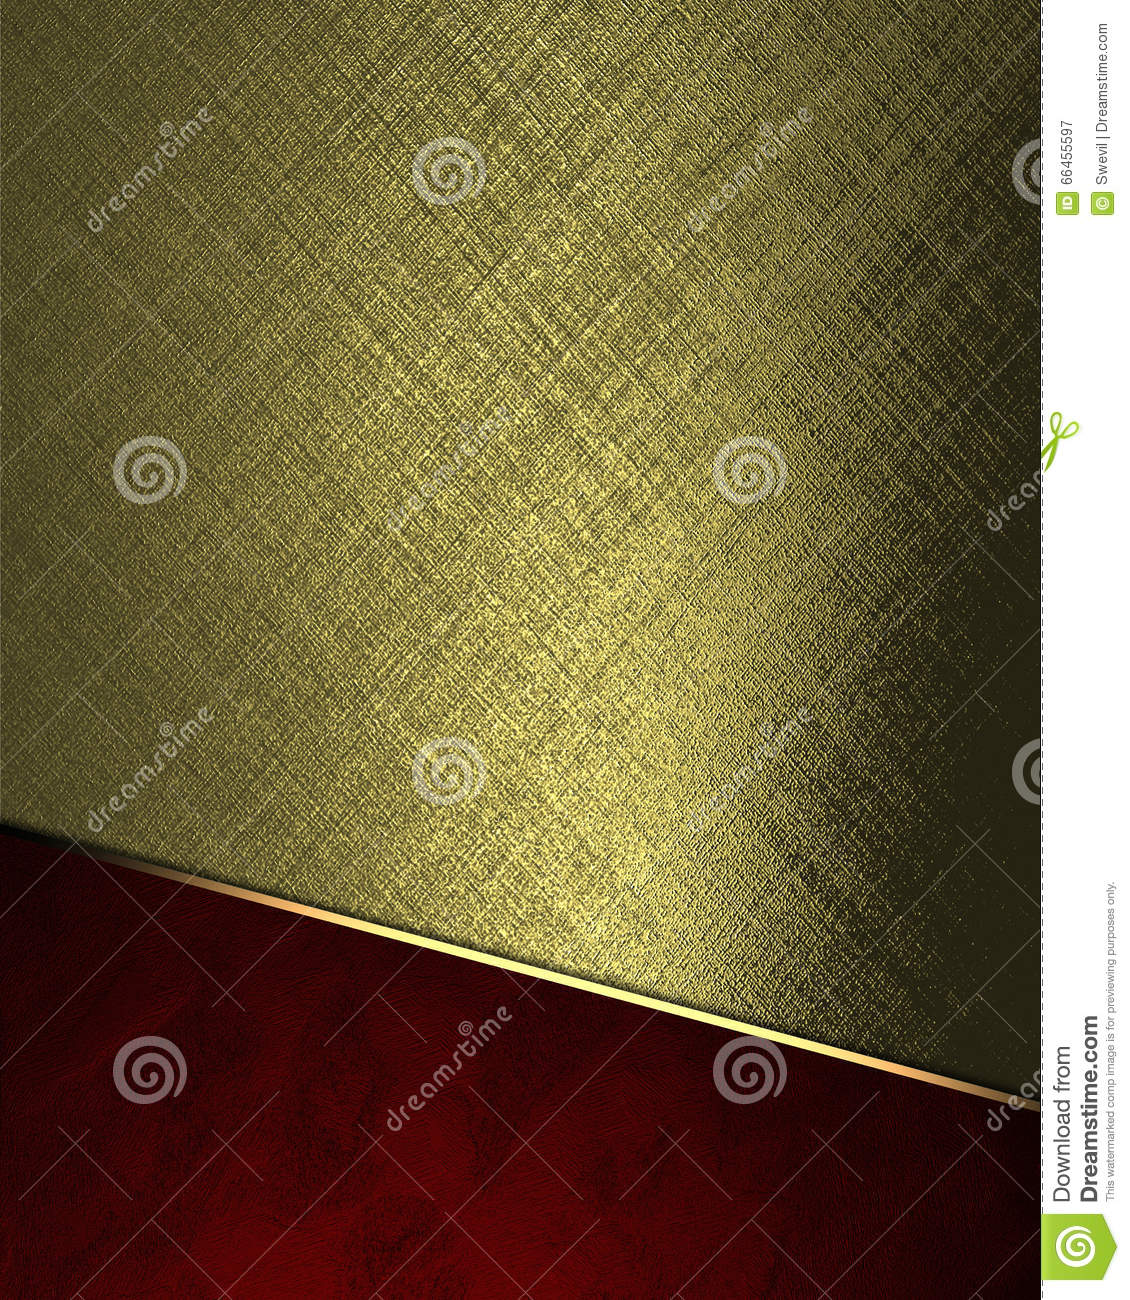 Abstract gold background with red bottom element for for Copy design